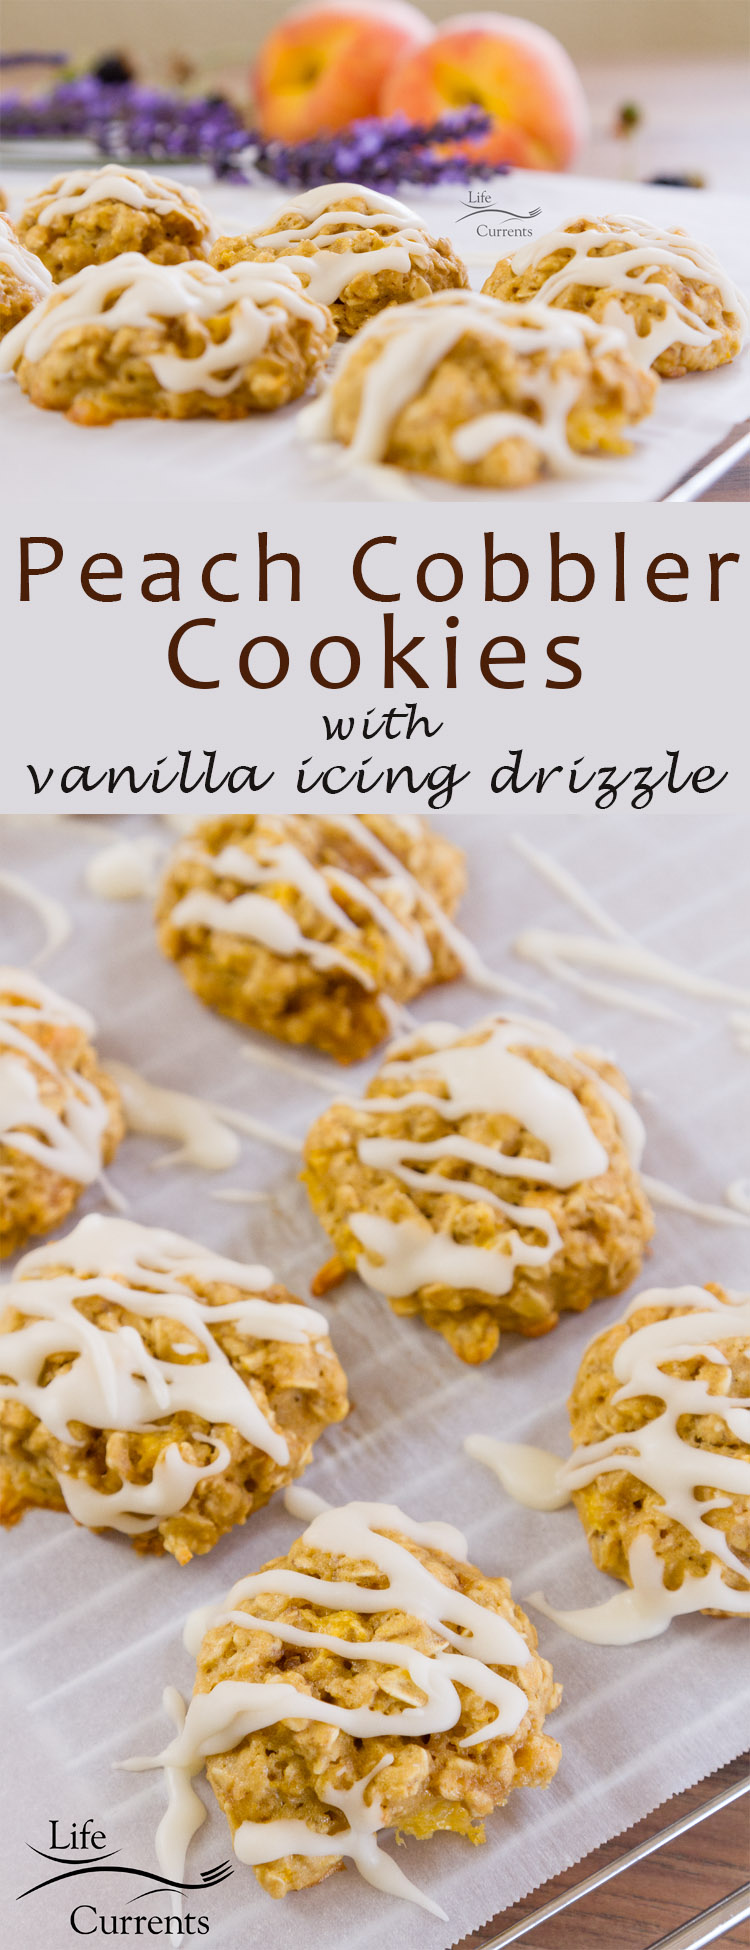 Soft peachy cookies filled with oatmeal goodness and drizzled with a light sweet vanilla icing. So good as a nice summer dessert or as a breakfast snack!